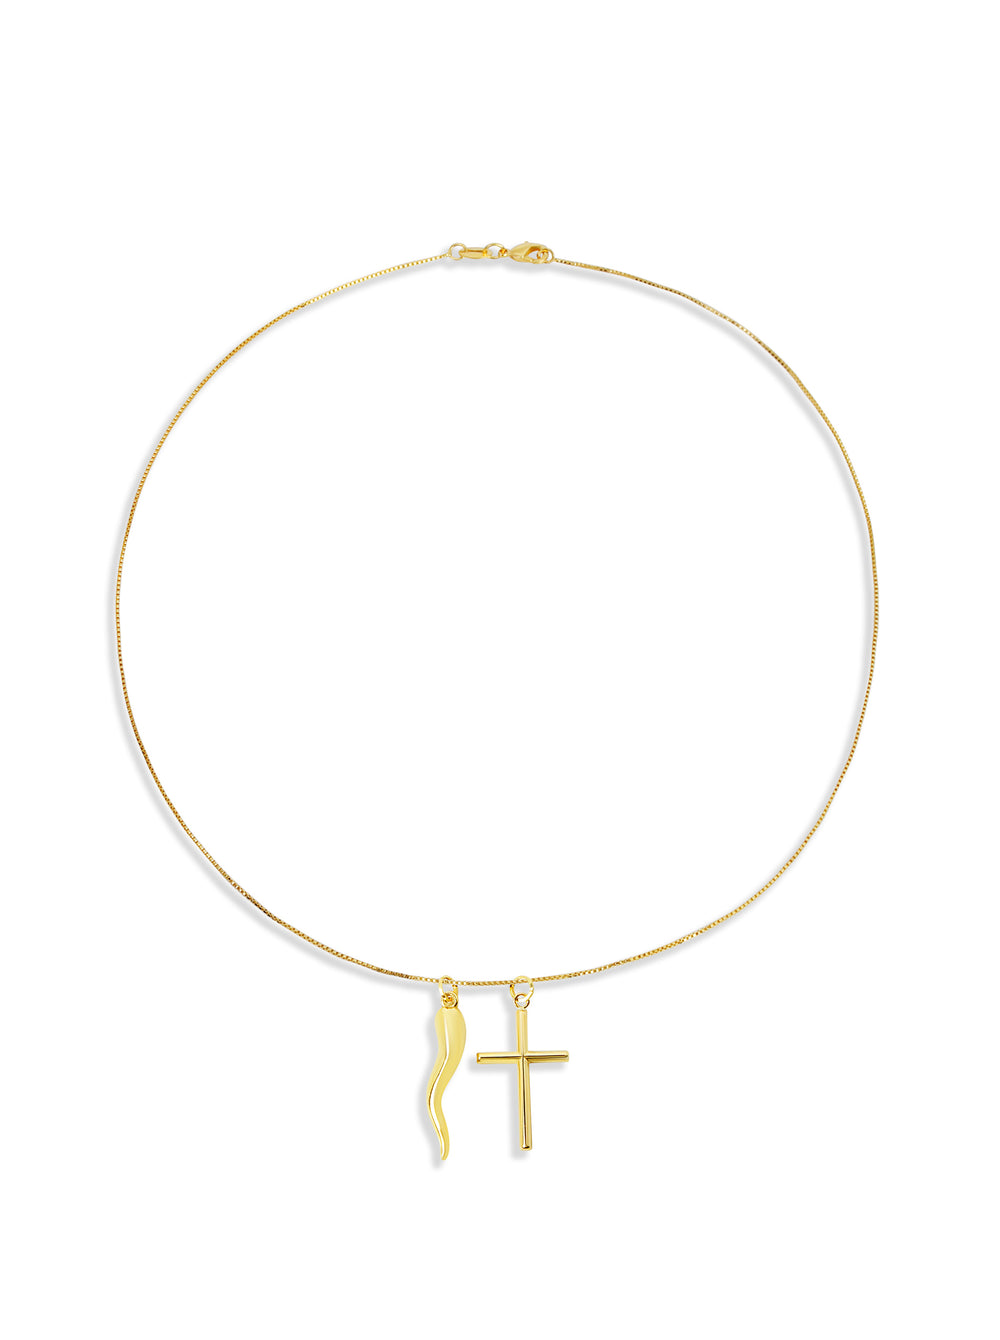 THE HORN CROSS 14KT PENDANT NECKLACE